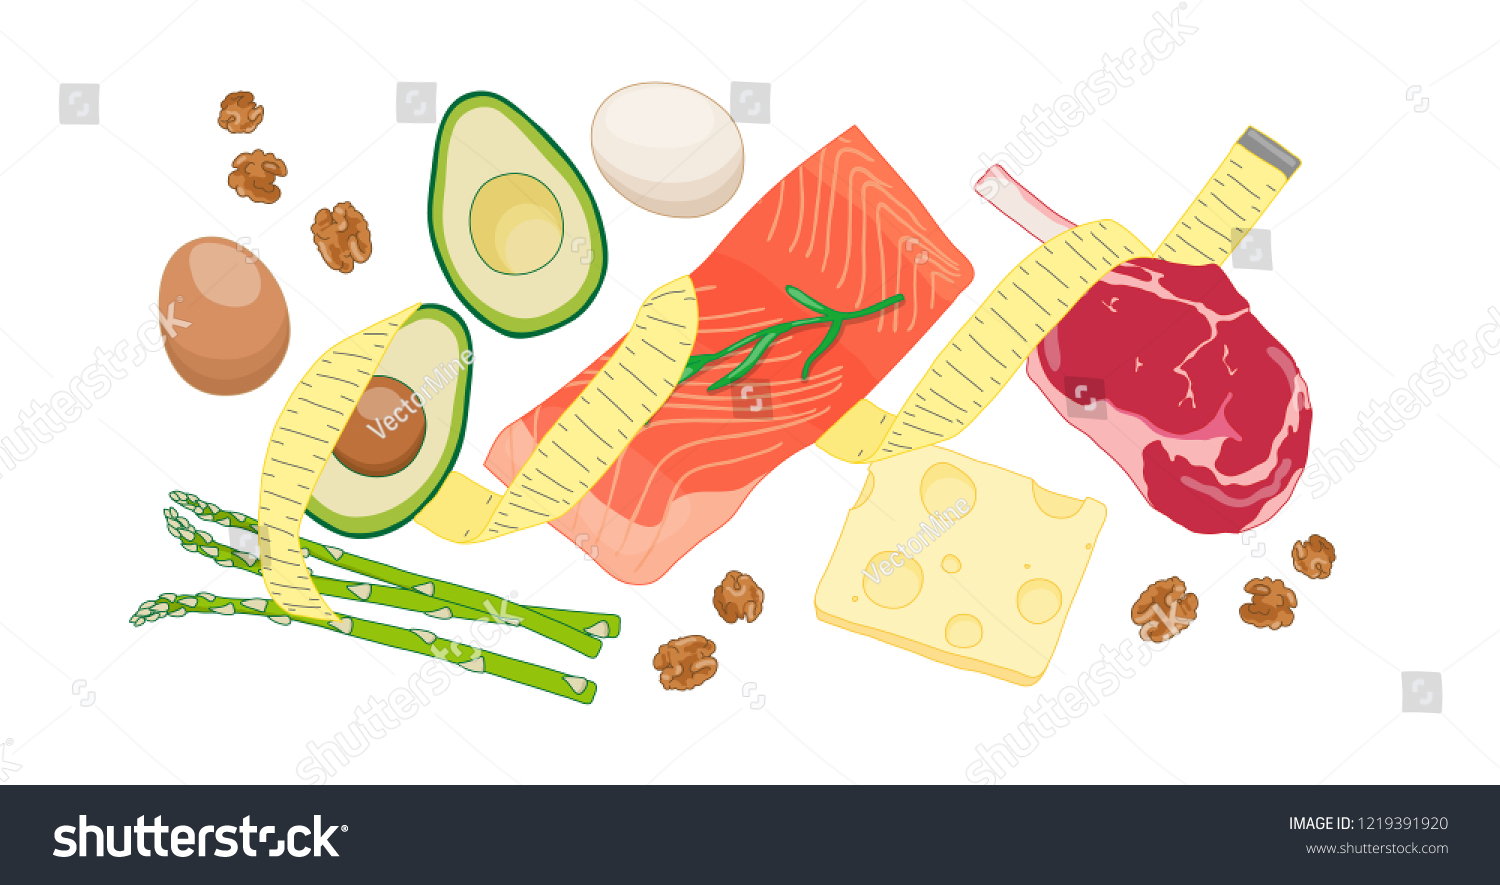 Atkins Low Carb Diet Concept Illustration Stock Vector Royalty Free